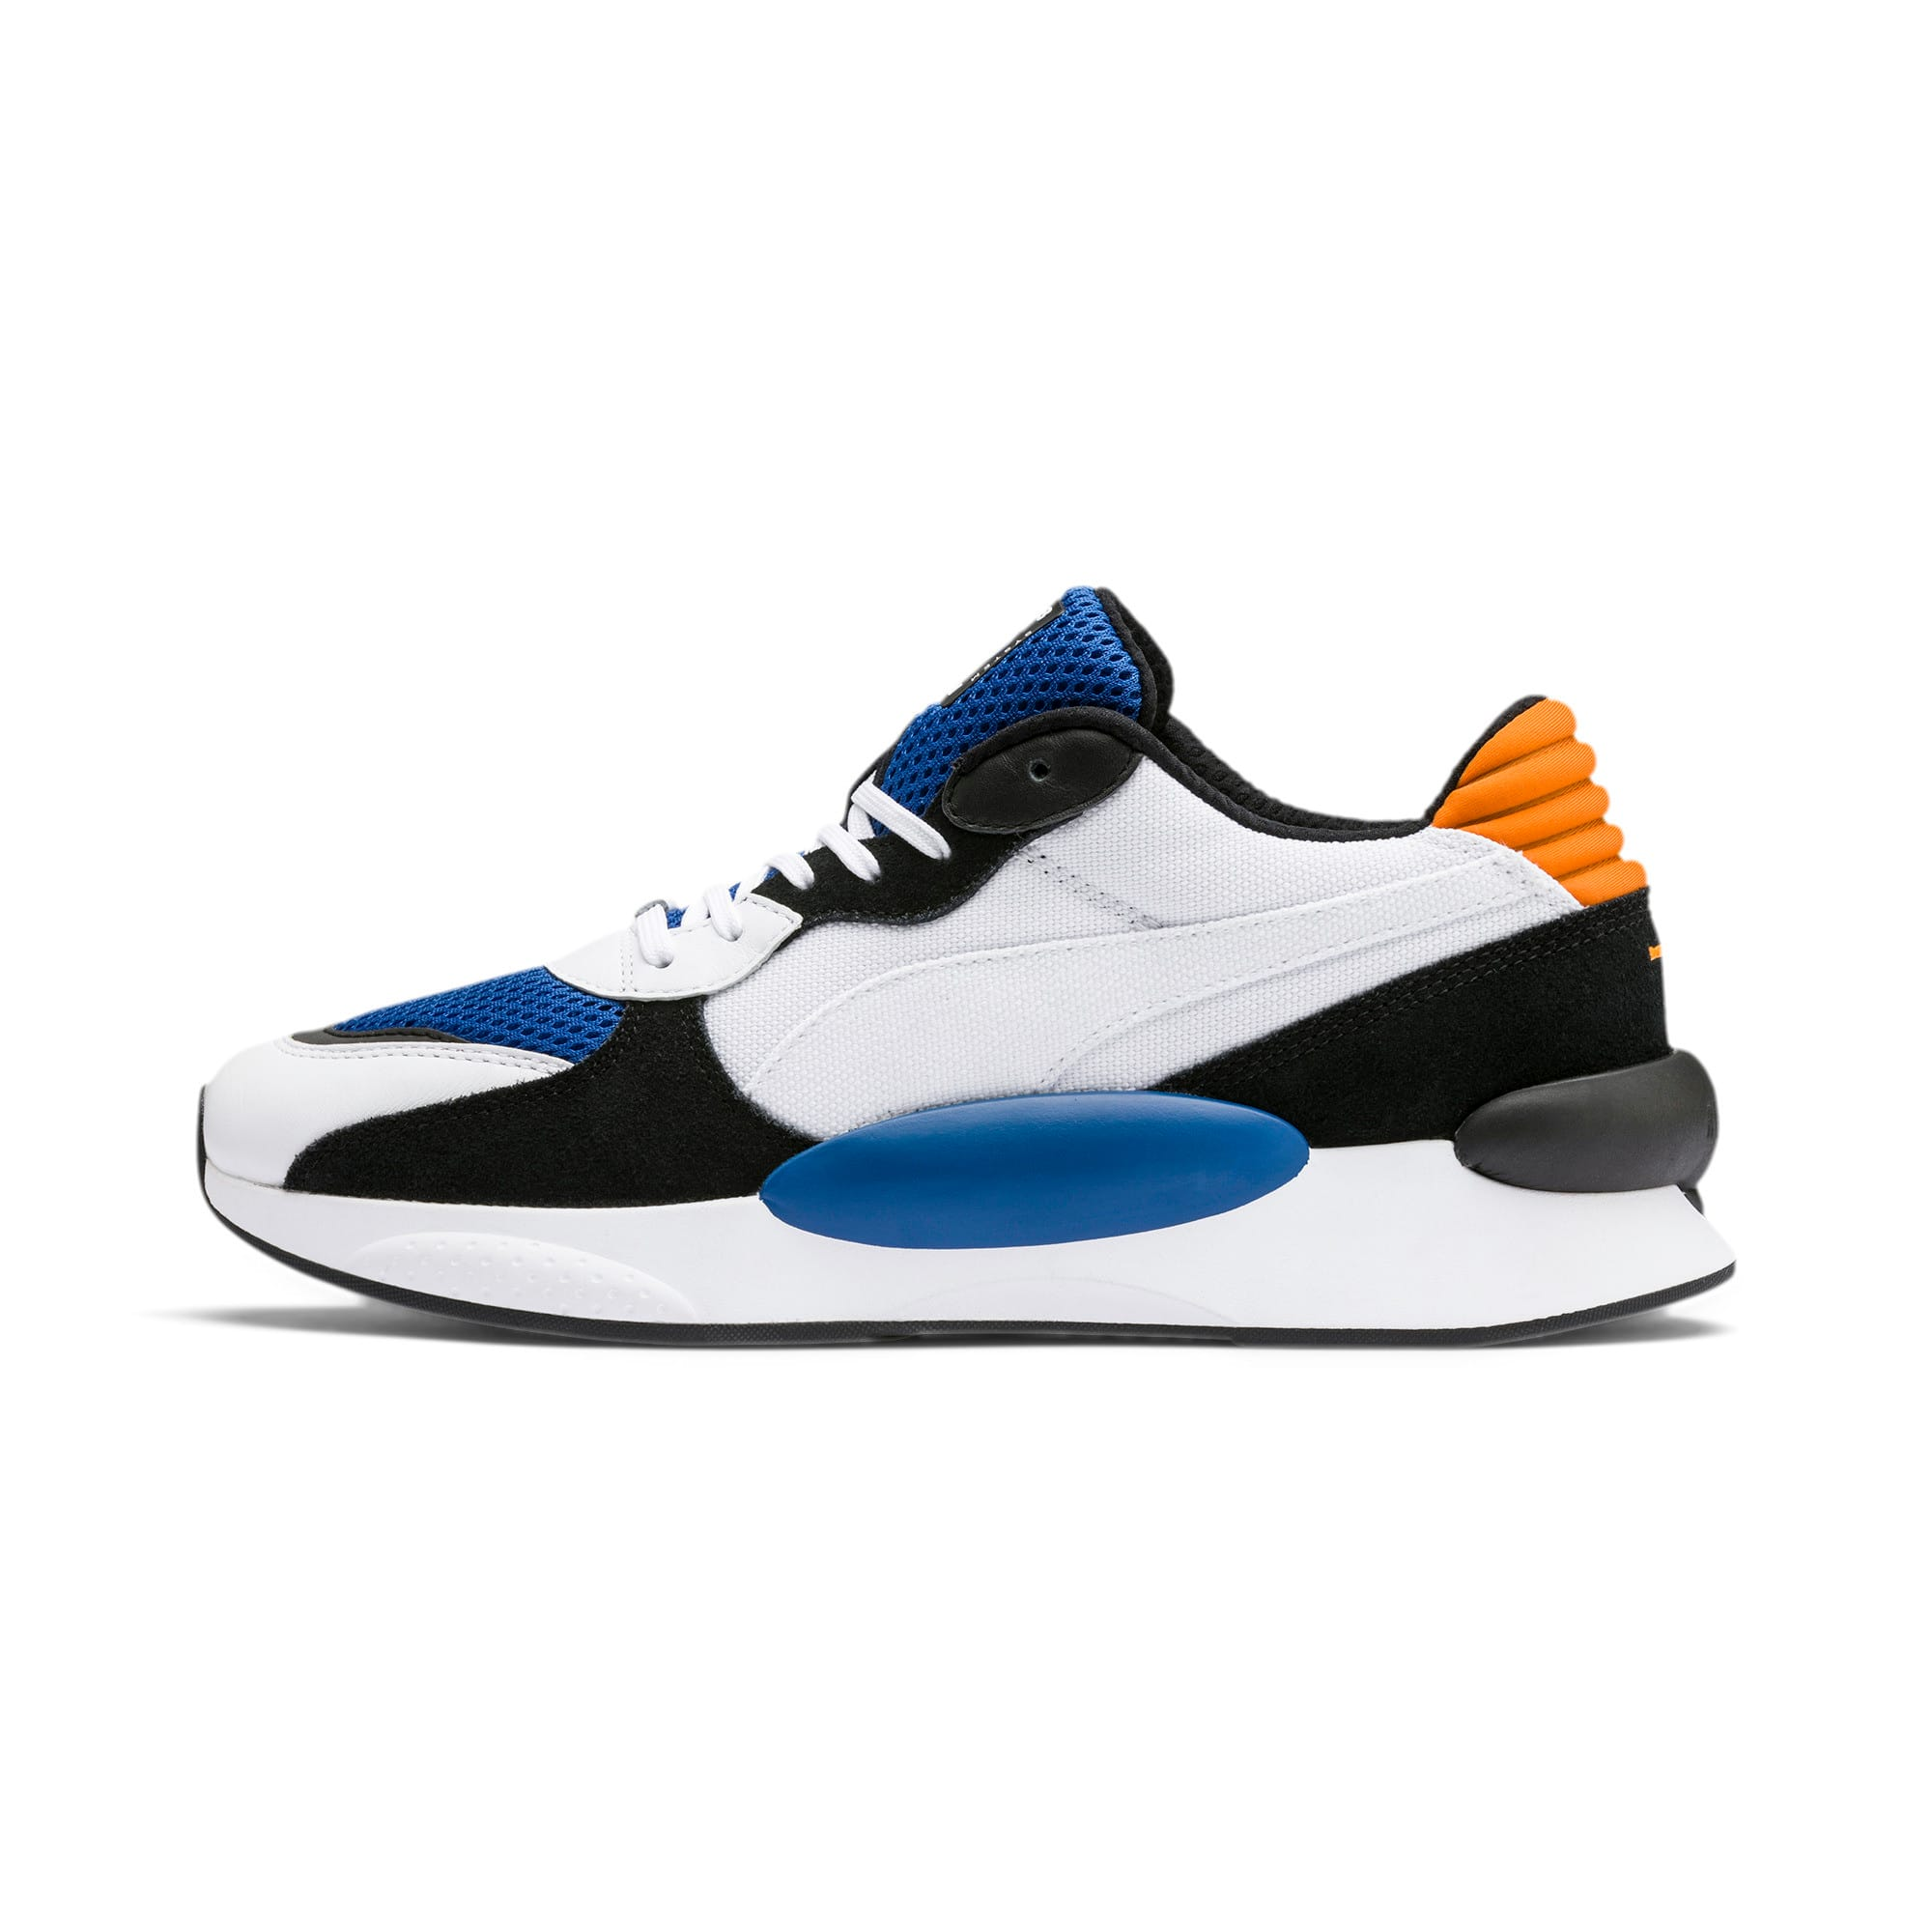 Thumbnail 1 of RS 9.8 Cosmic Trainers, Puma White-Galaxy Blue, medium